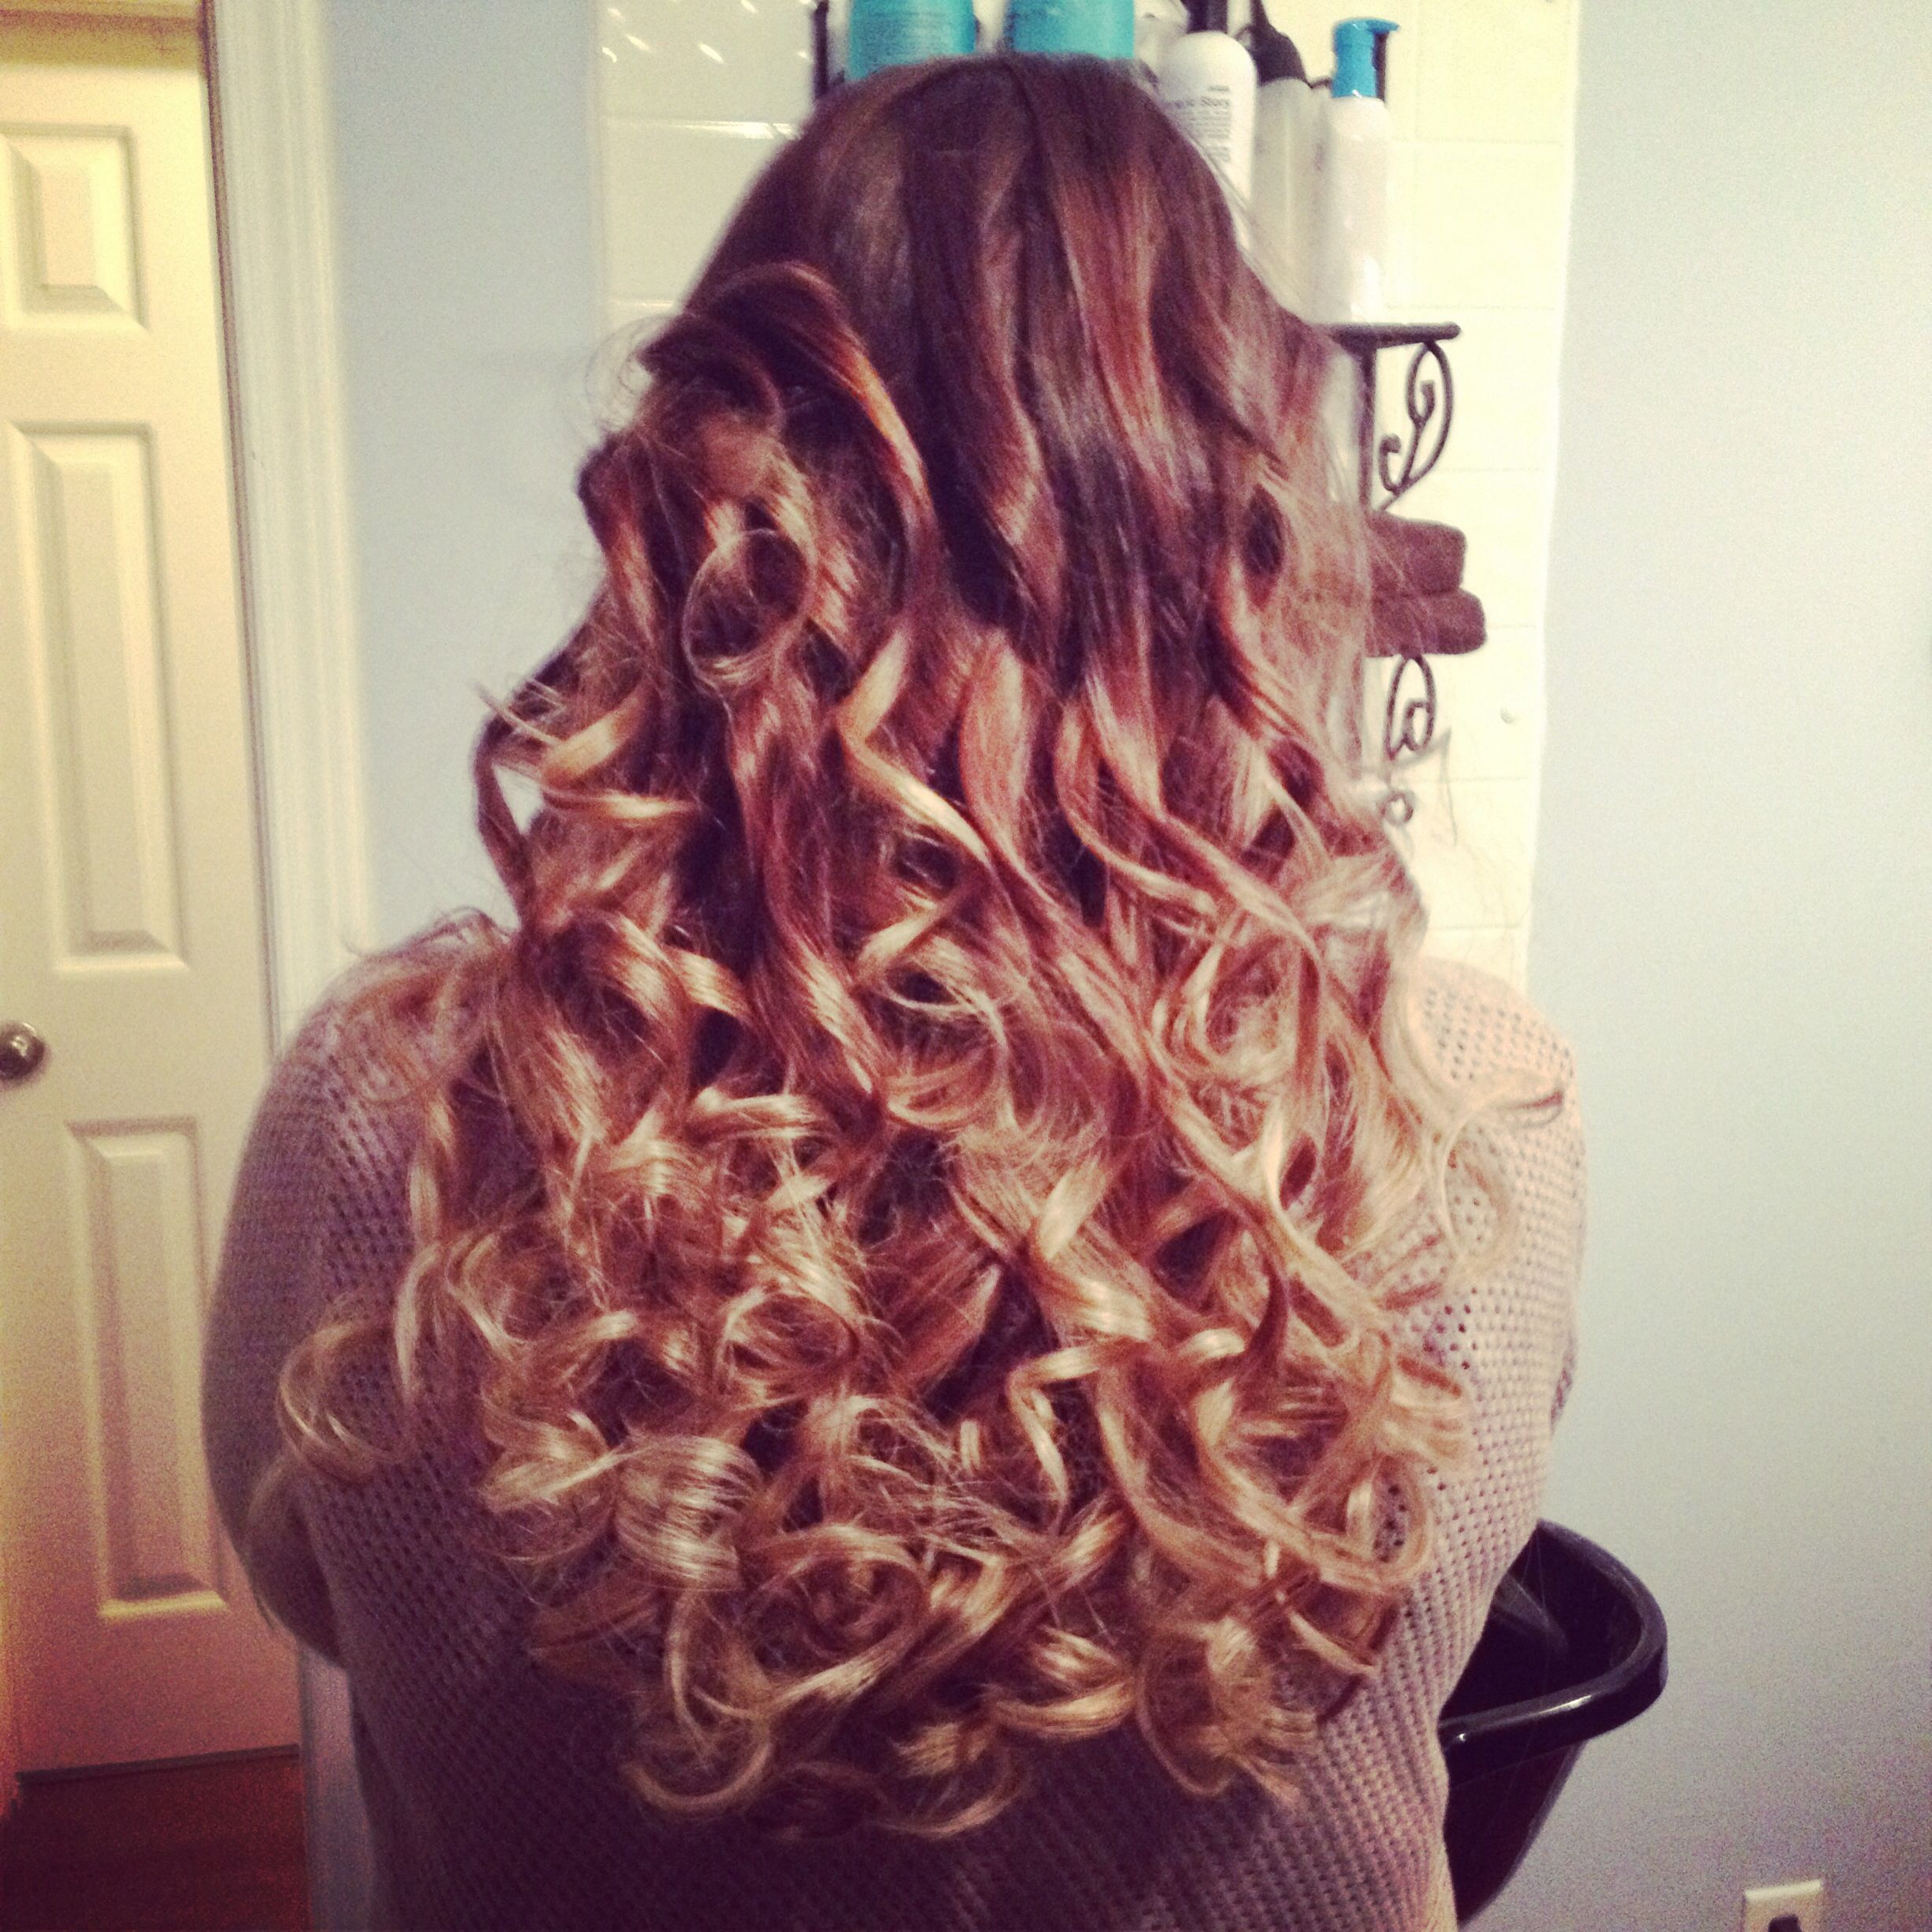 Ombre hairbychovis hair stylist pinterest ombre